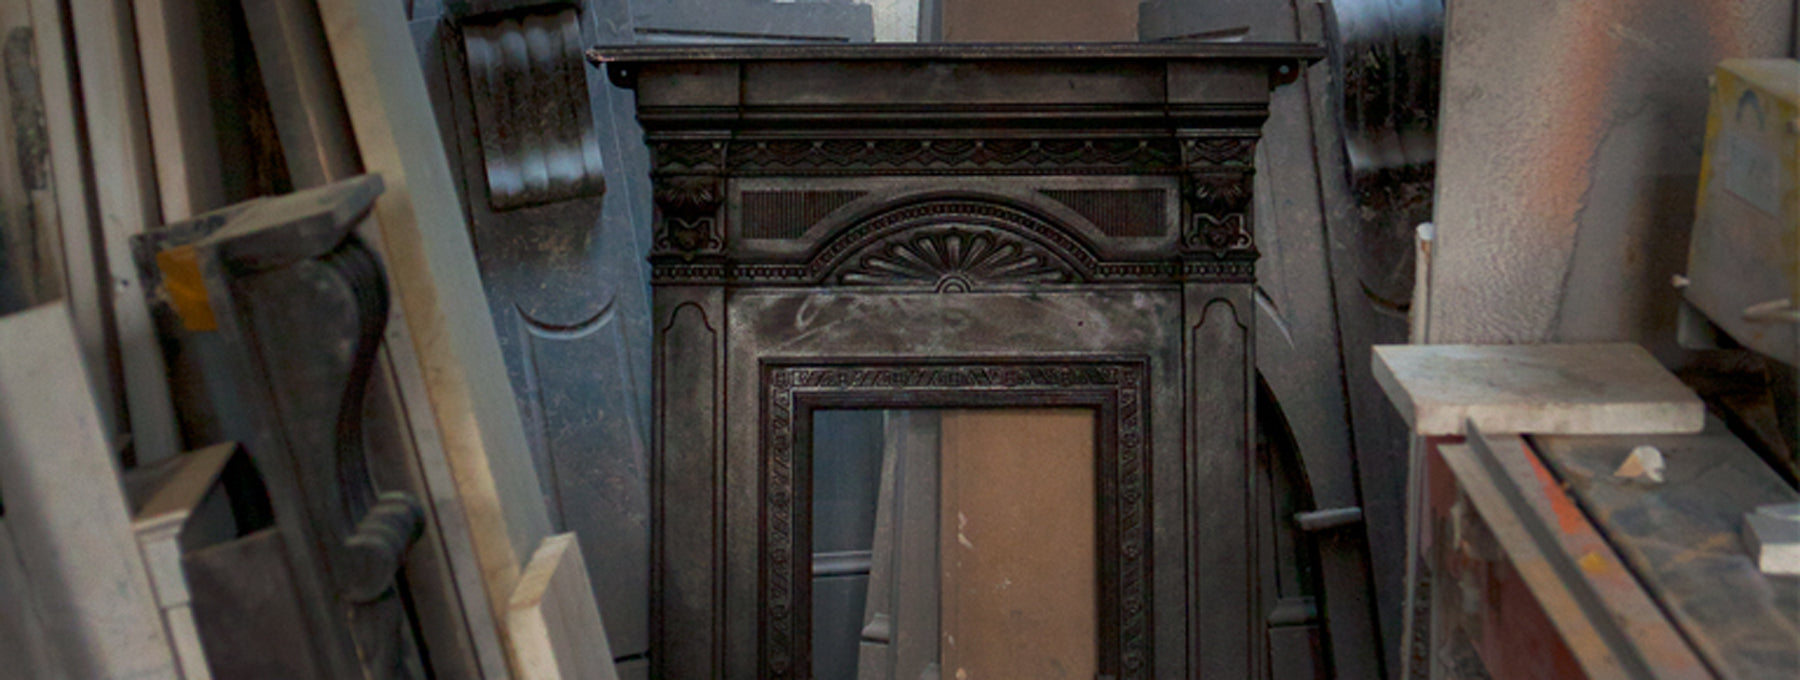 sell antique fireplace